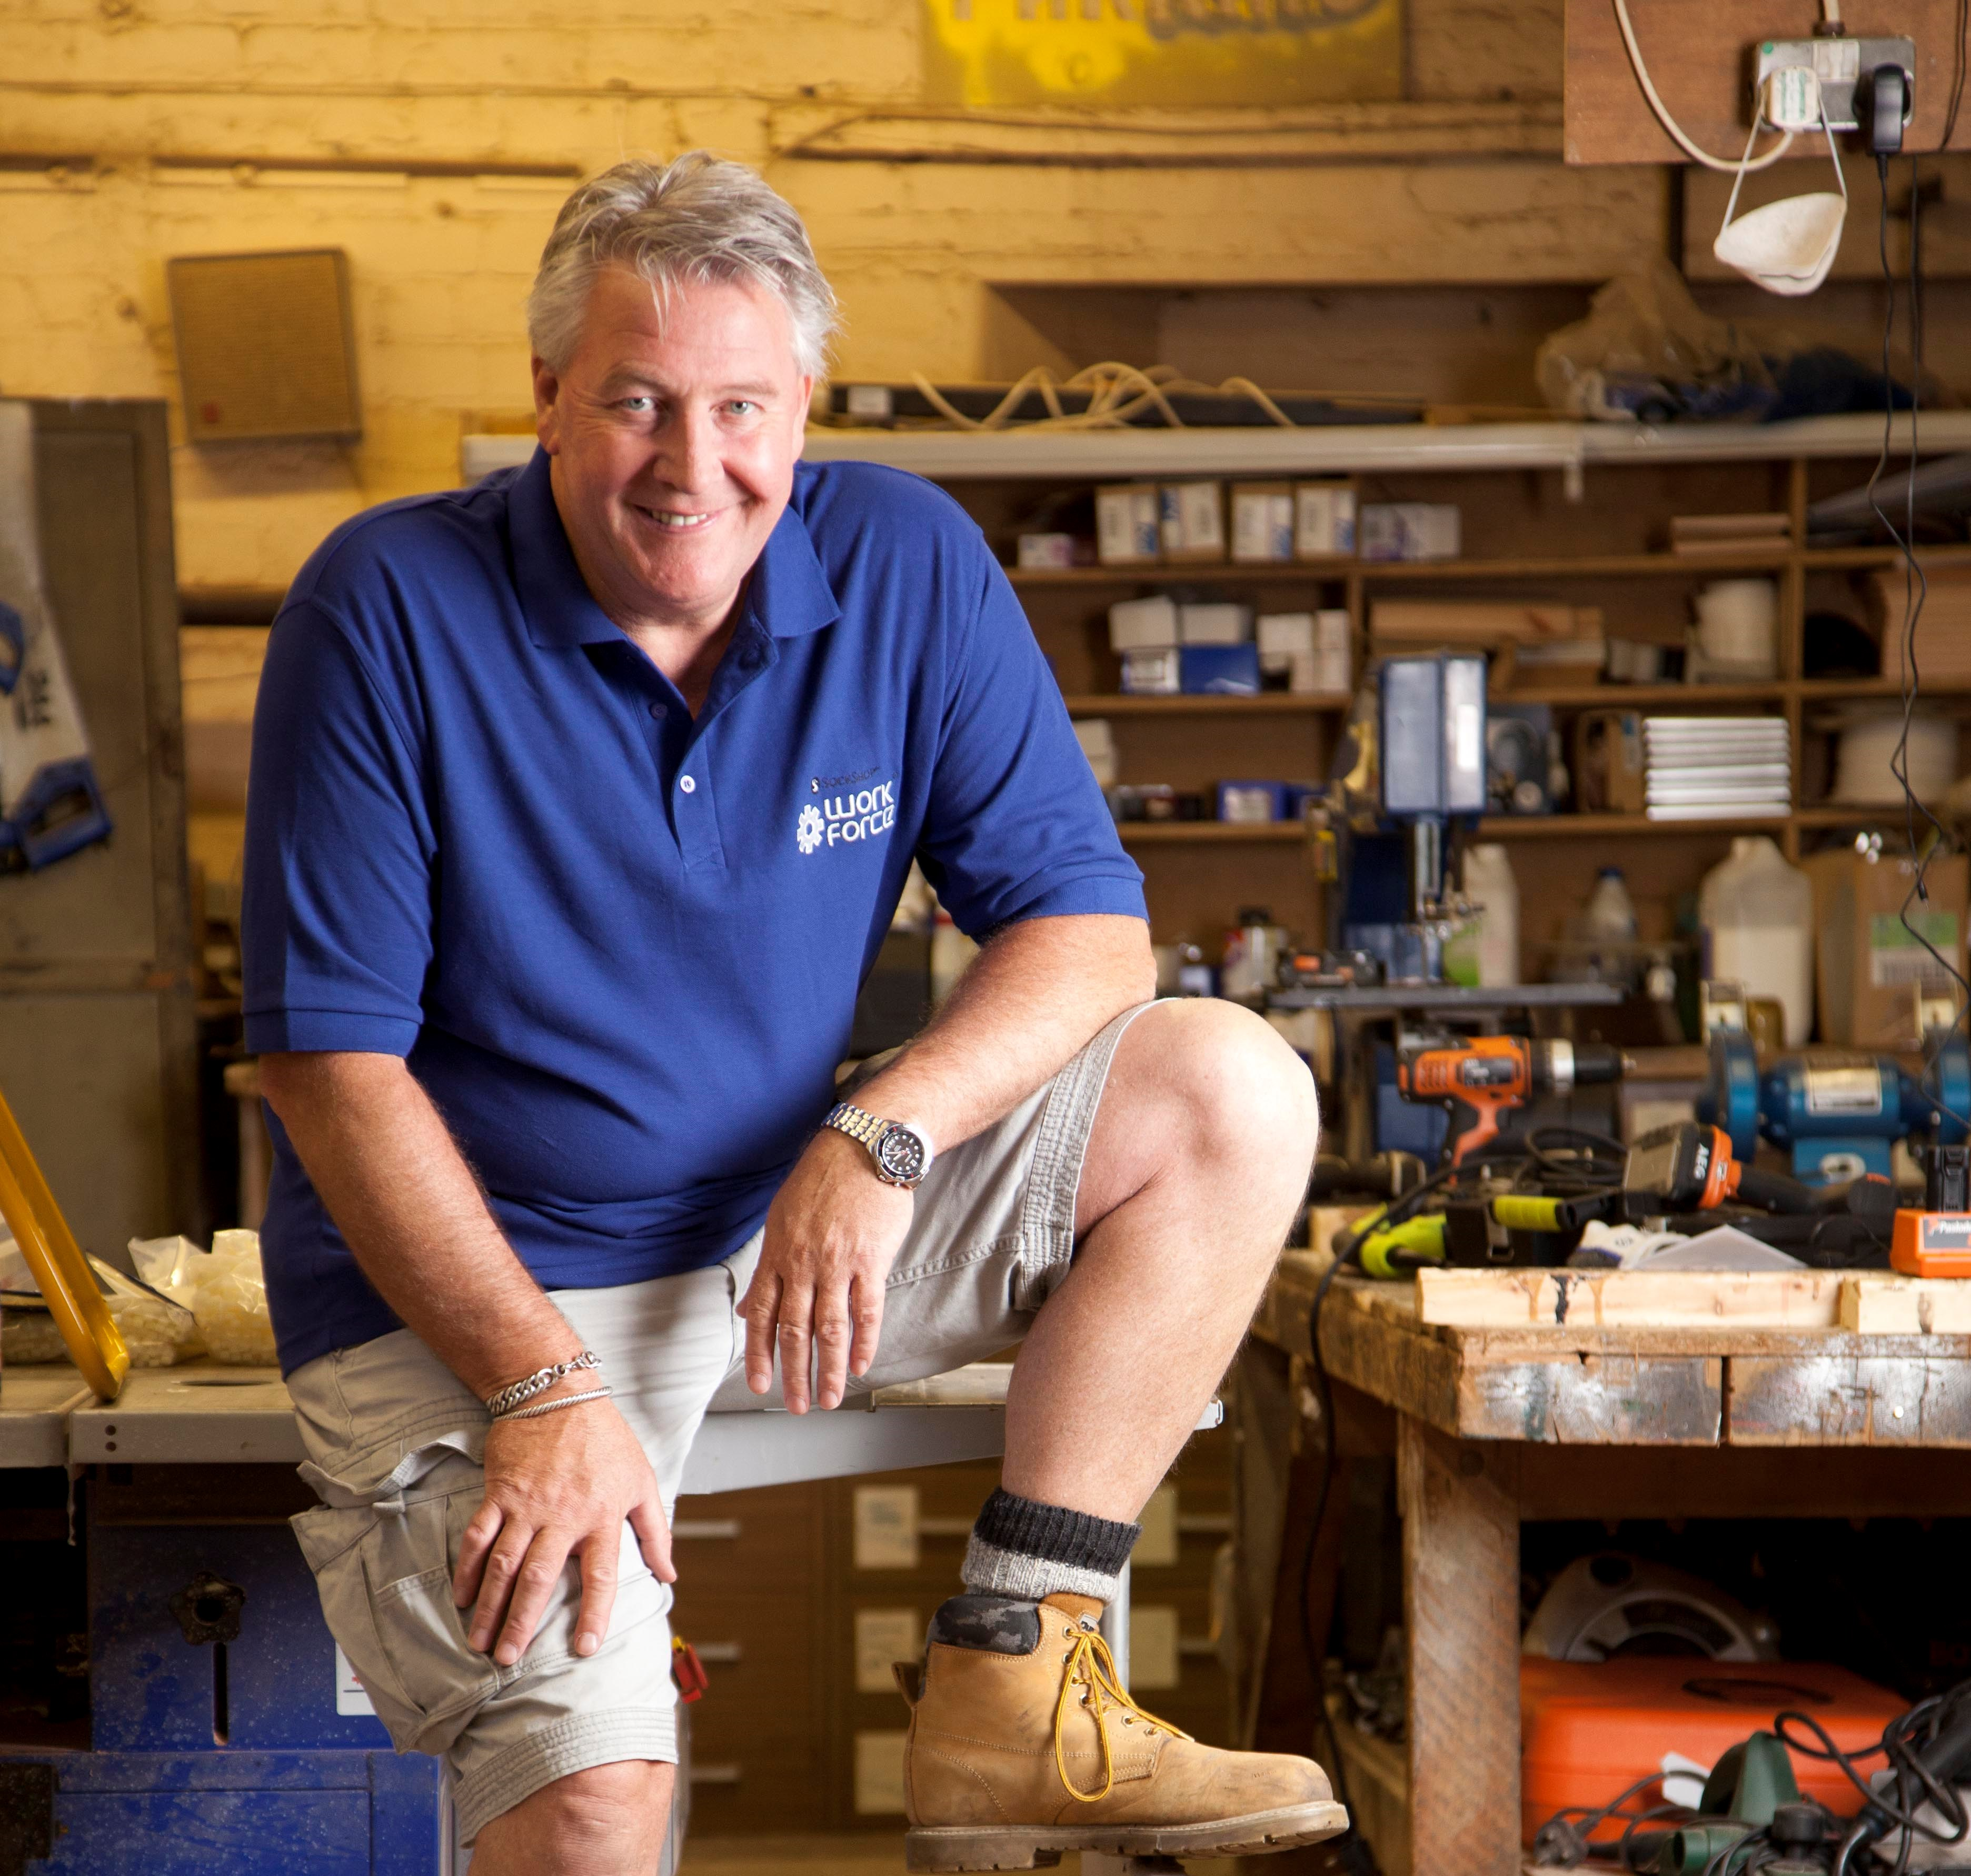 Tommy Walsh Urge S The Industry To Look After Their Feet